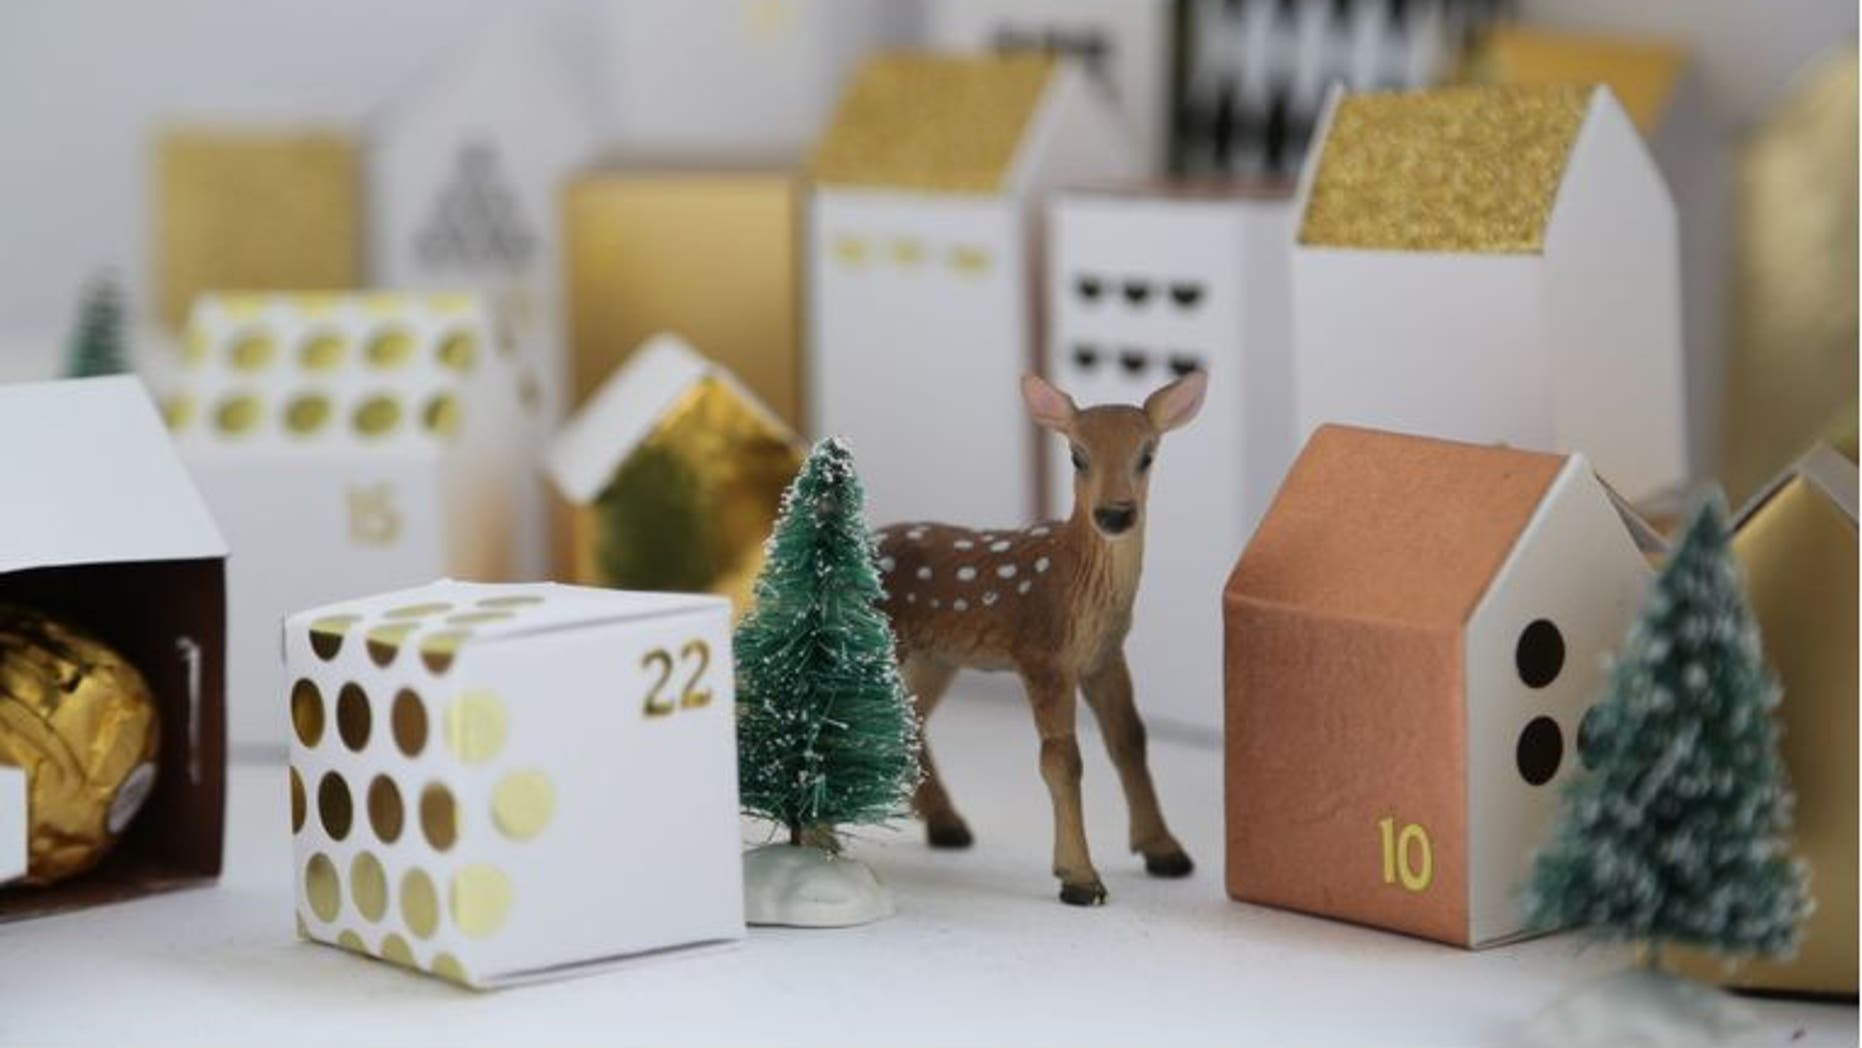 10 handmade Christmas gifts for the whole family | Fox News